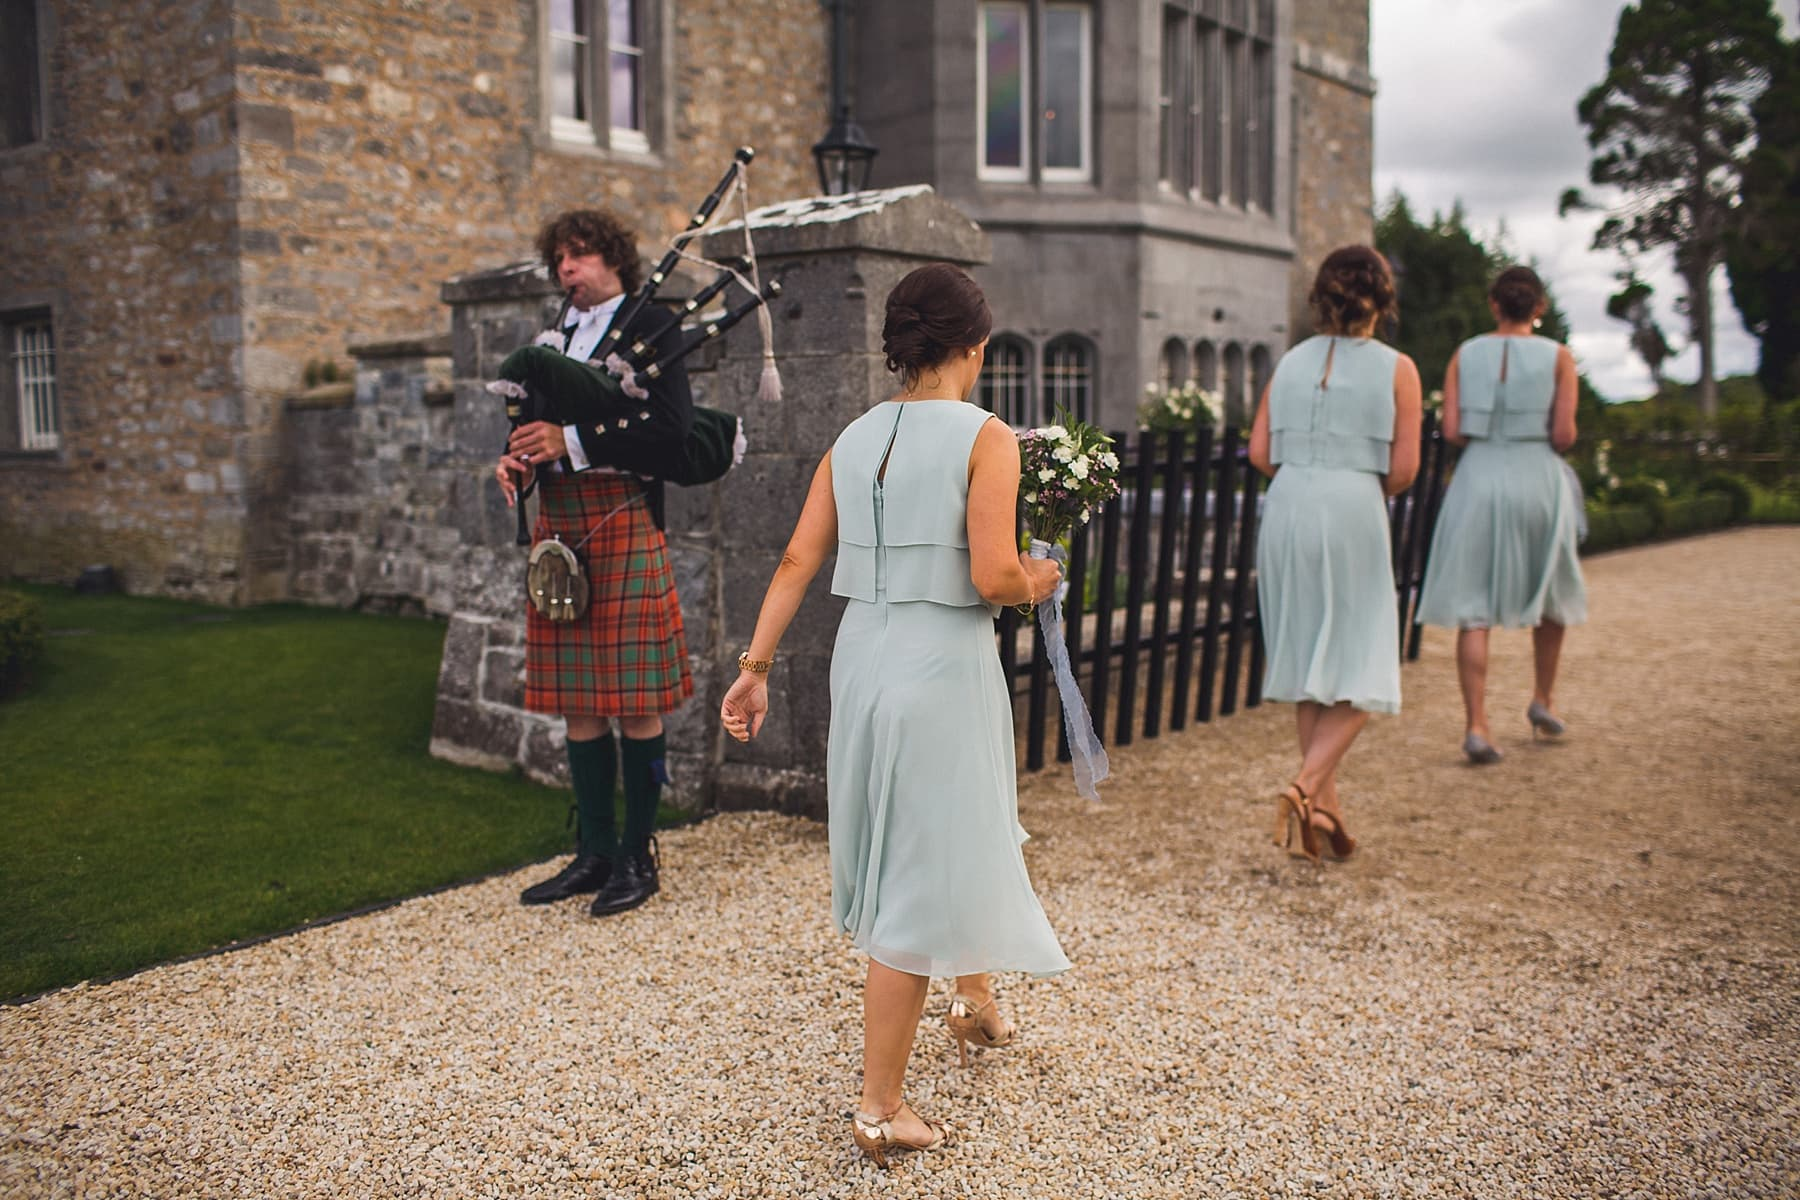 Markree Castle wedding photographer,irish humanist ceremony,yew tree,